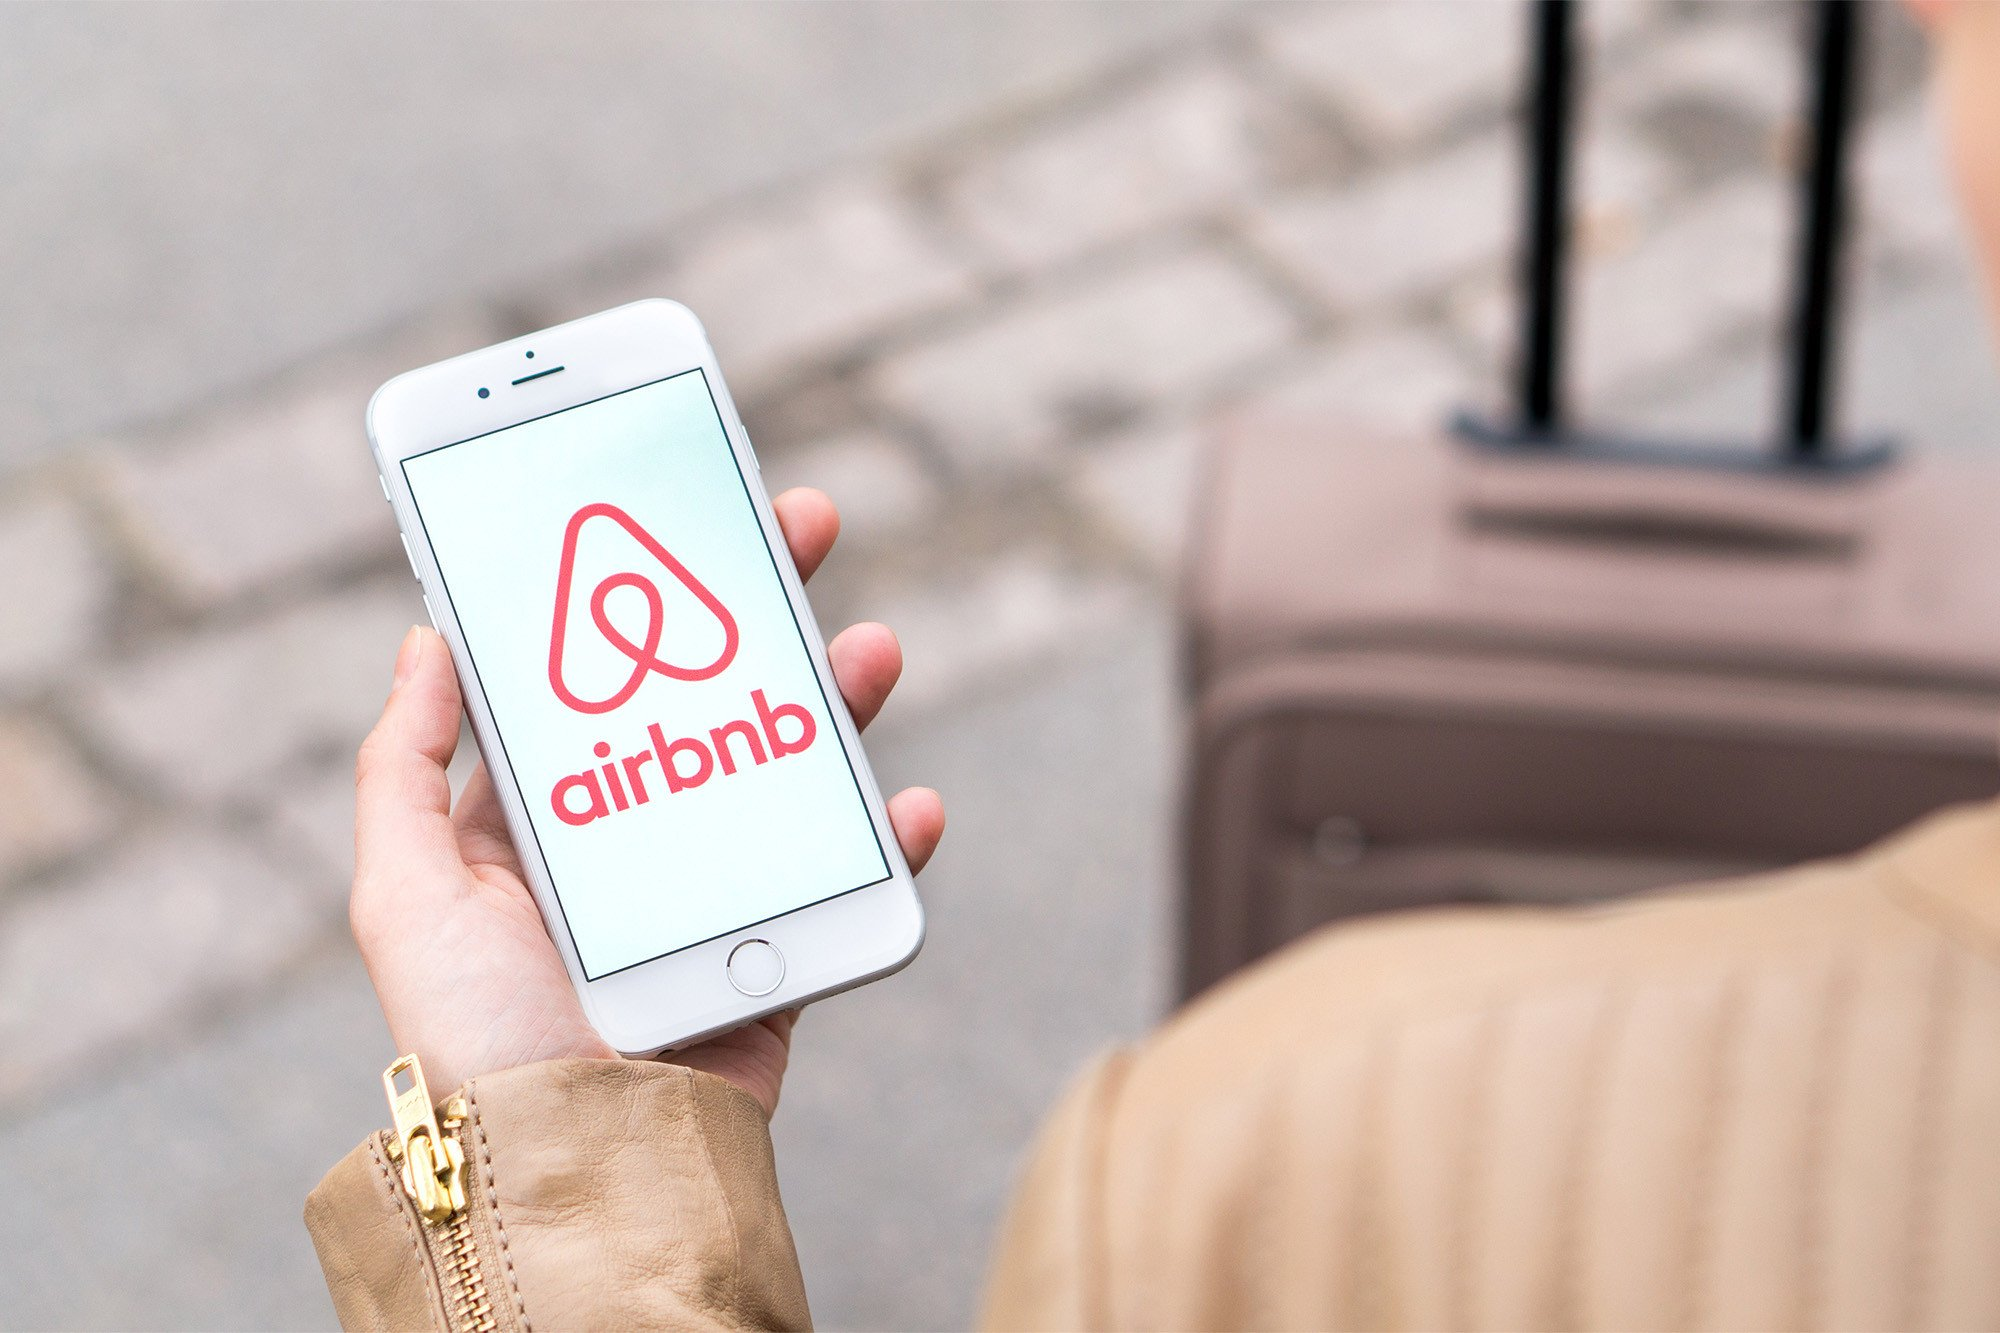 Airbnb users could have privacy breached in de Blasio subpoena